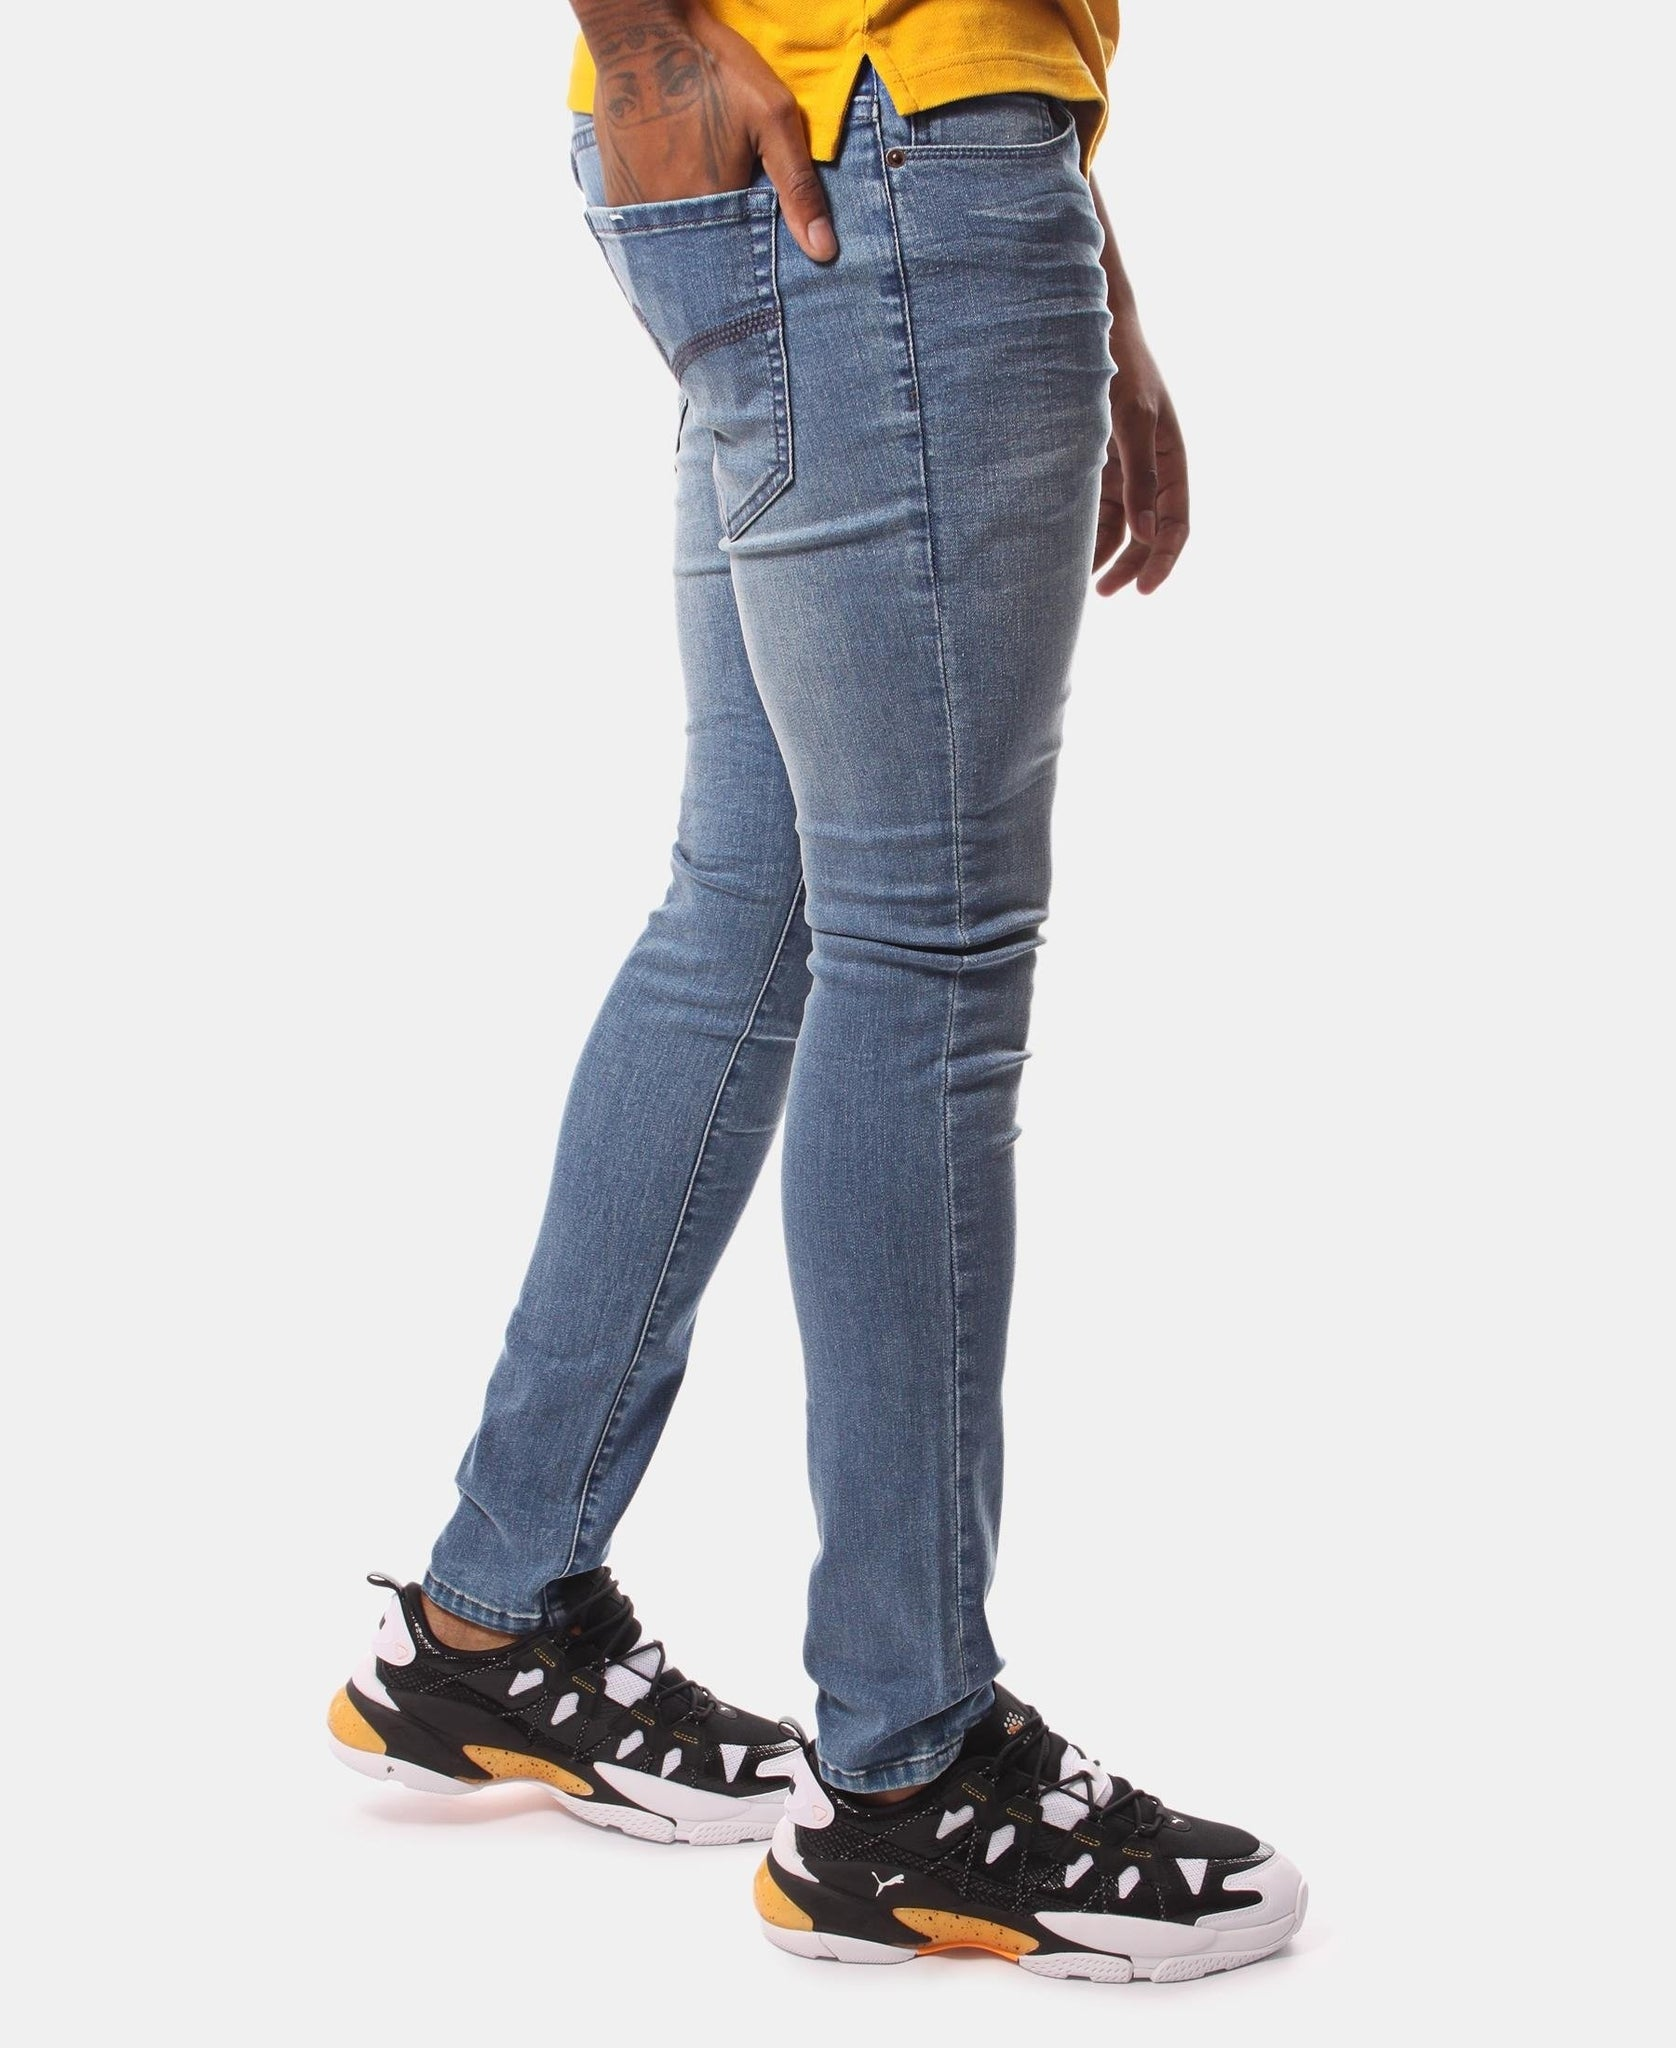 Men's Straight Skinny Jeans - Light Blue